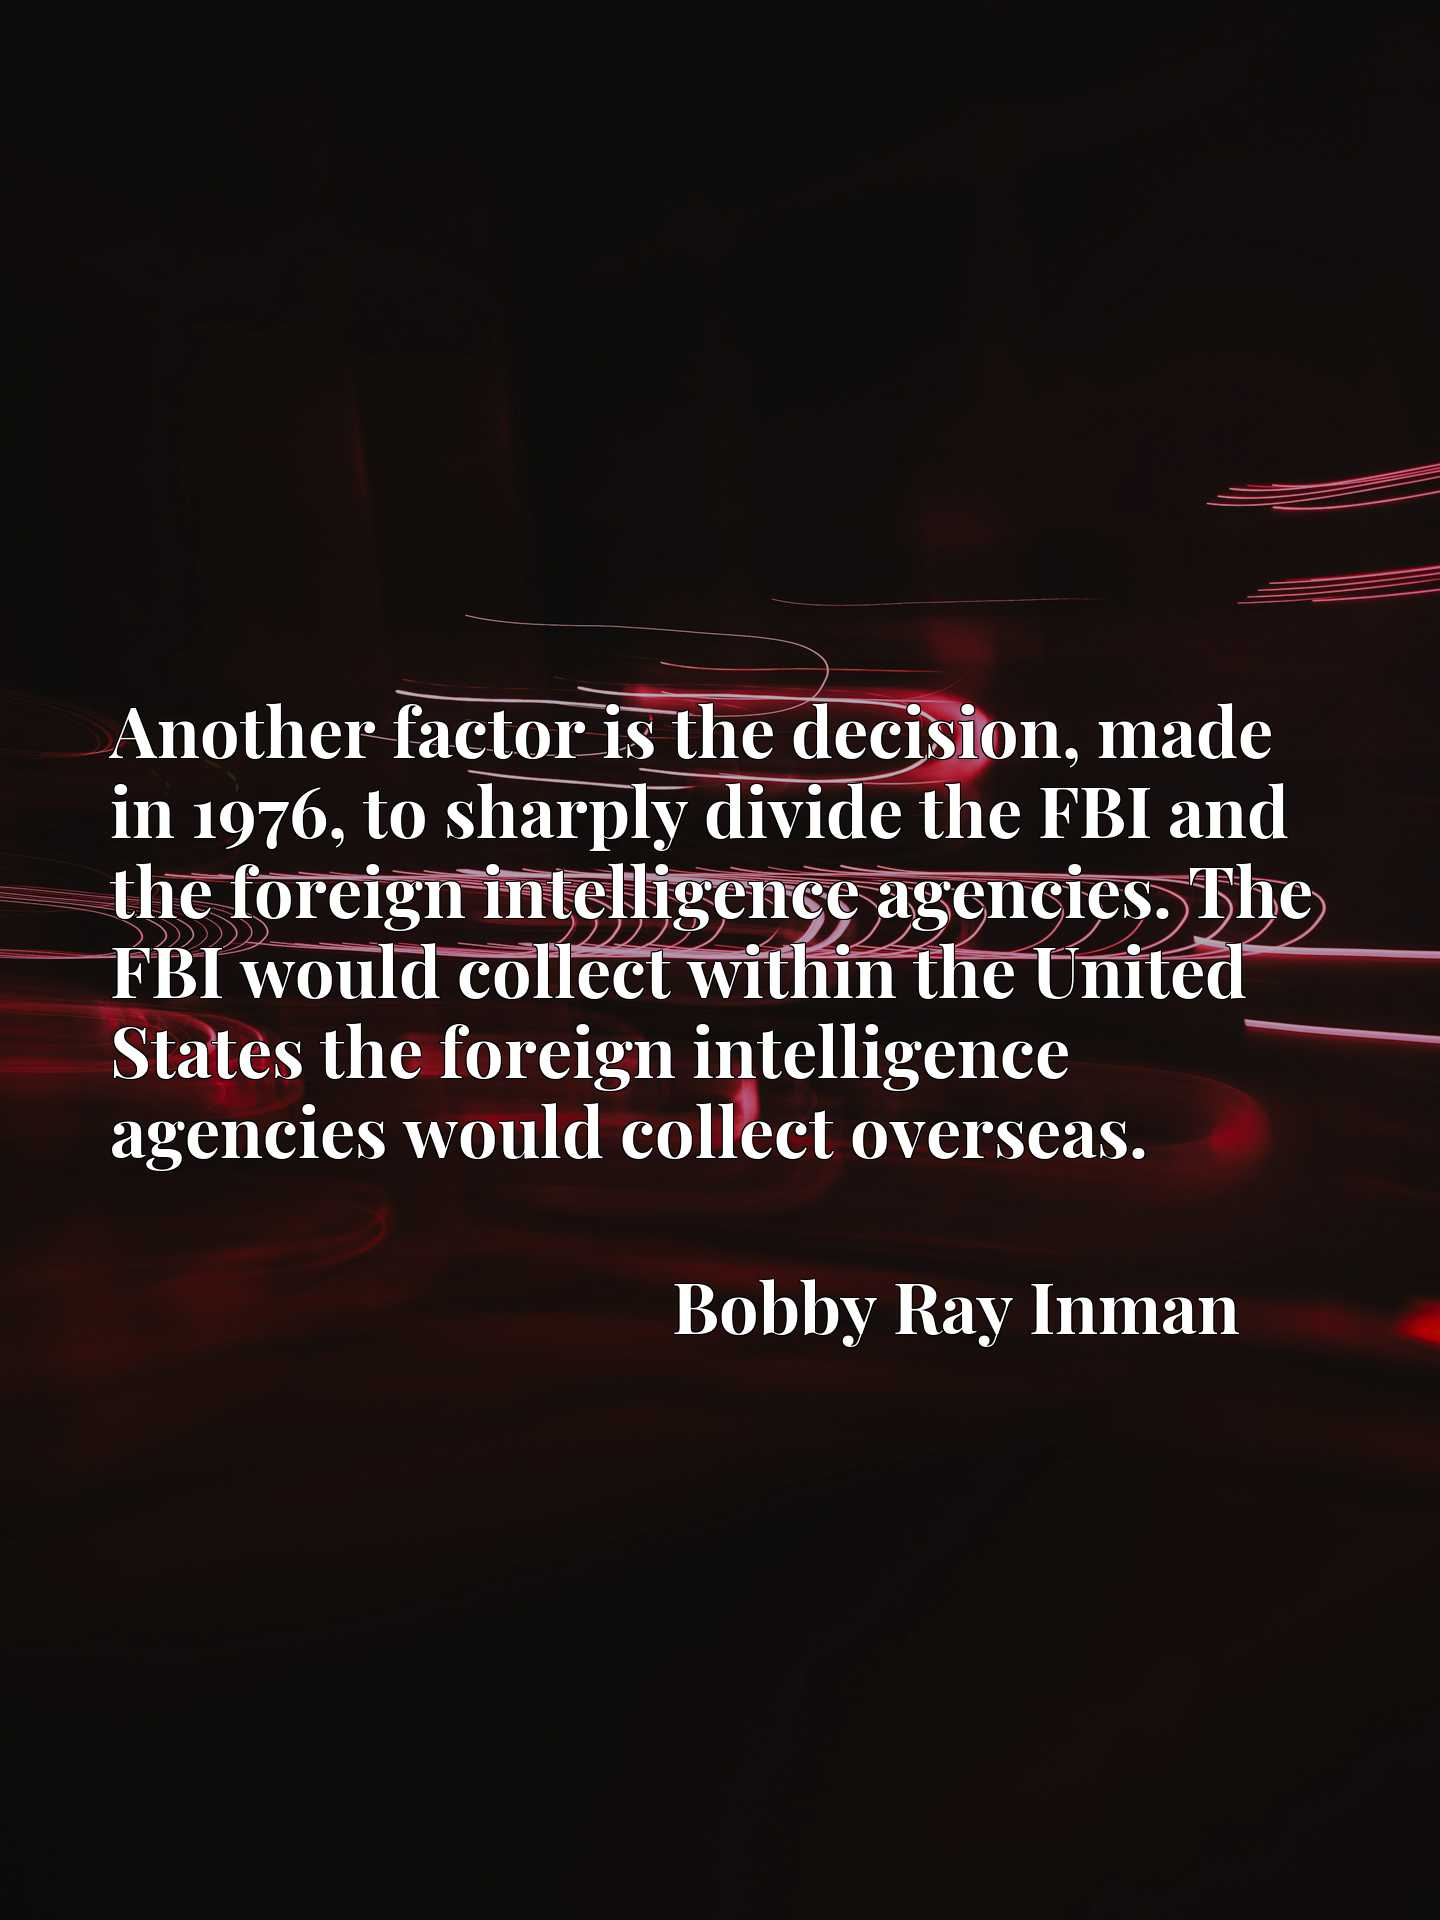 Another factor is the decision, made in 1976, to sharply divide the FBI and the foreign intelligence agencies. The FBI would collect within the United States the foreign intelligence agencies would collect overseas.